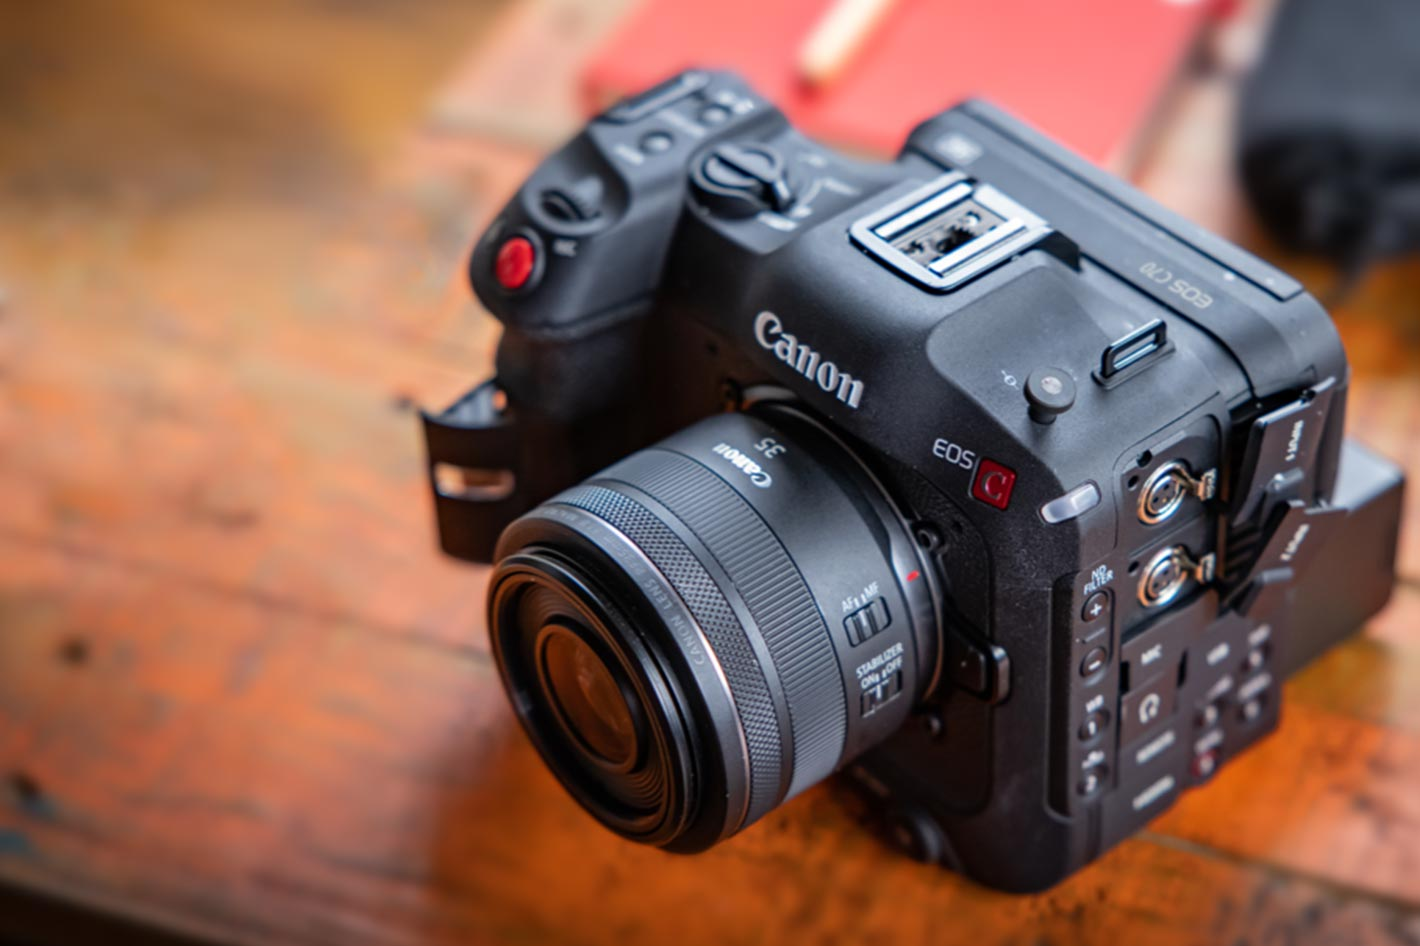 Canon EOS C70 brings a number of 'firsts' for the Cinema EOS System 1